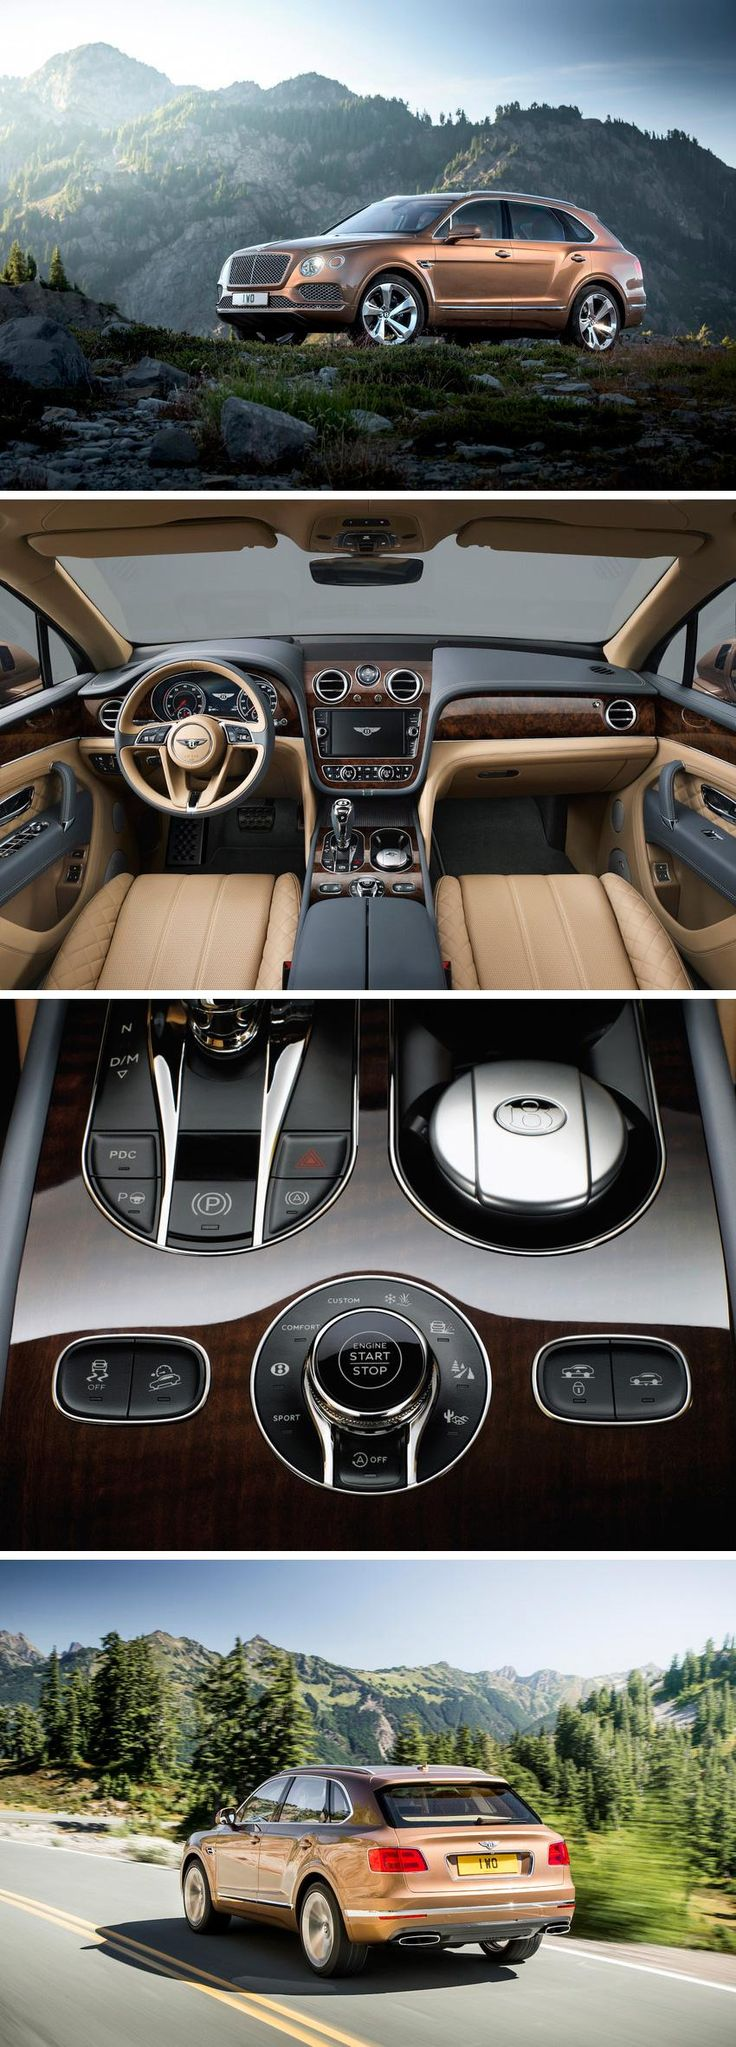 """Bentley describes its £160,200 model as """"the fastest, most powerful, most luxurious & most exclusive SUV in the world""""- the new twin turbocharged W12, which is mounted north-south in the nose, packs 600bhp at 6000rpm and 663lb ft of torque between 1250rpm and 4500rpm. It drives through an eight-speed, paddle-shift ZF automatic to a four-wheel drive system featuring a Torsen centre differential...x"""